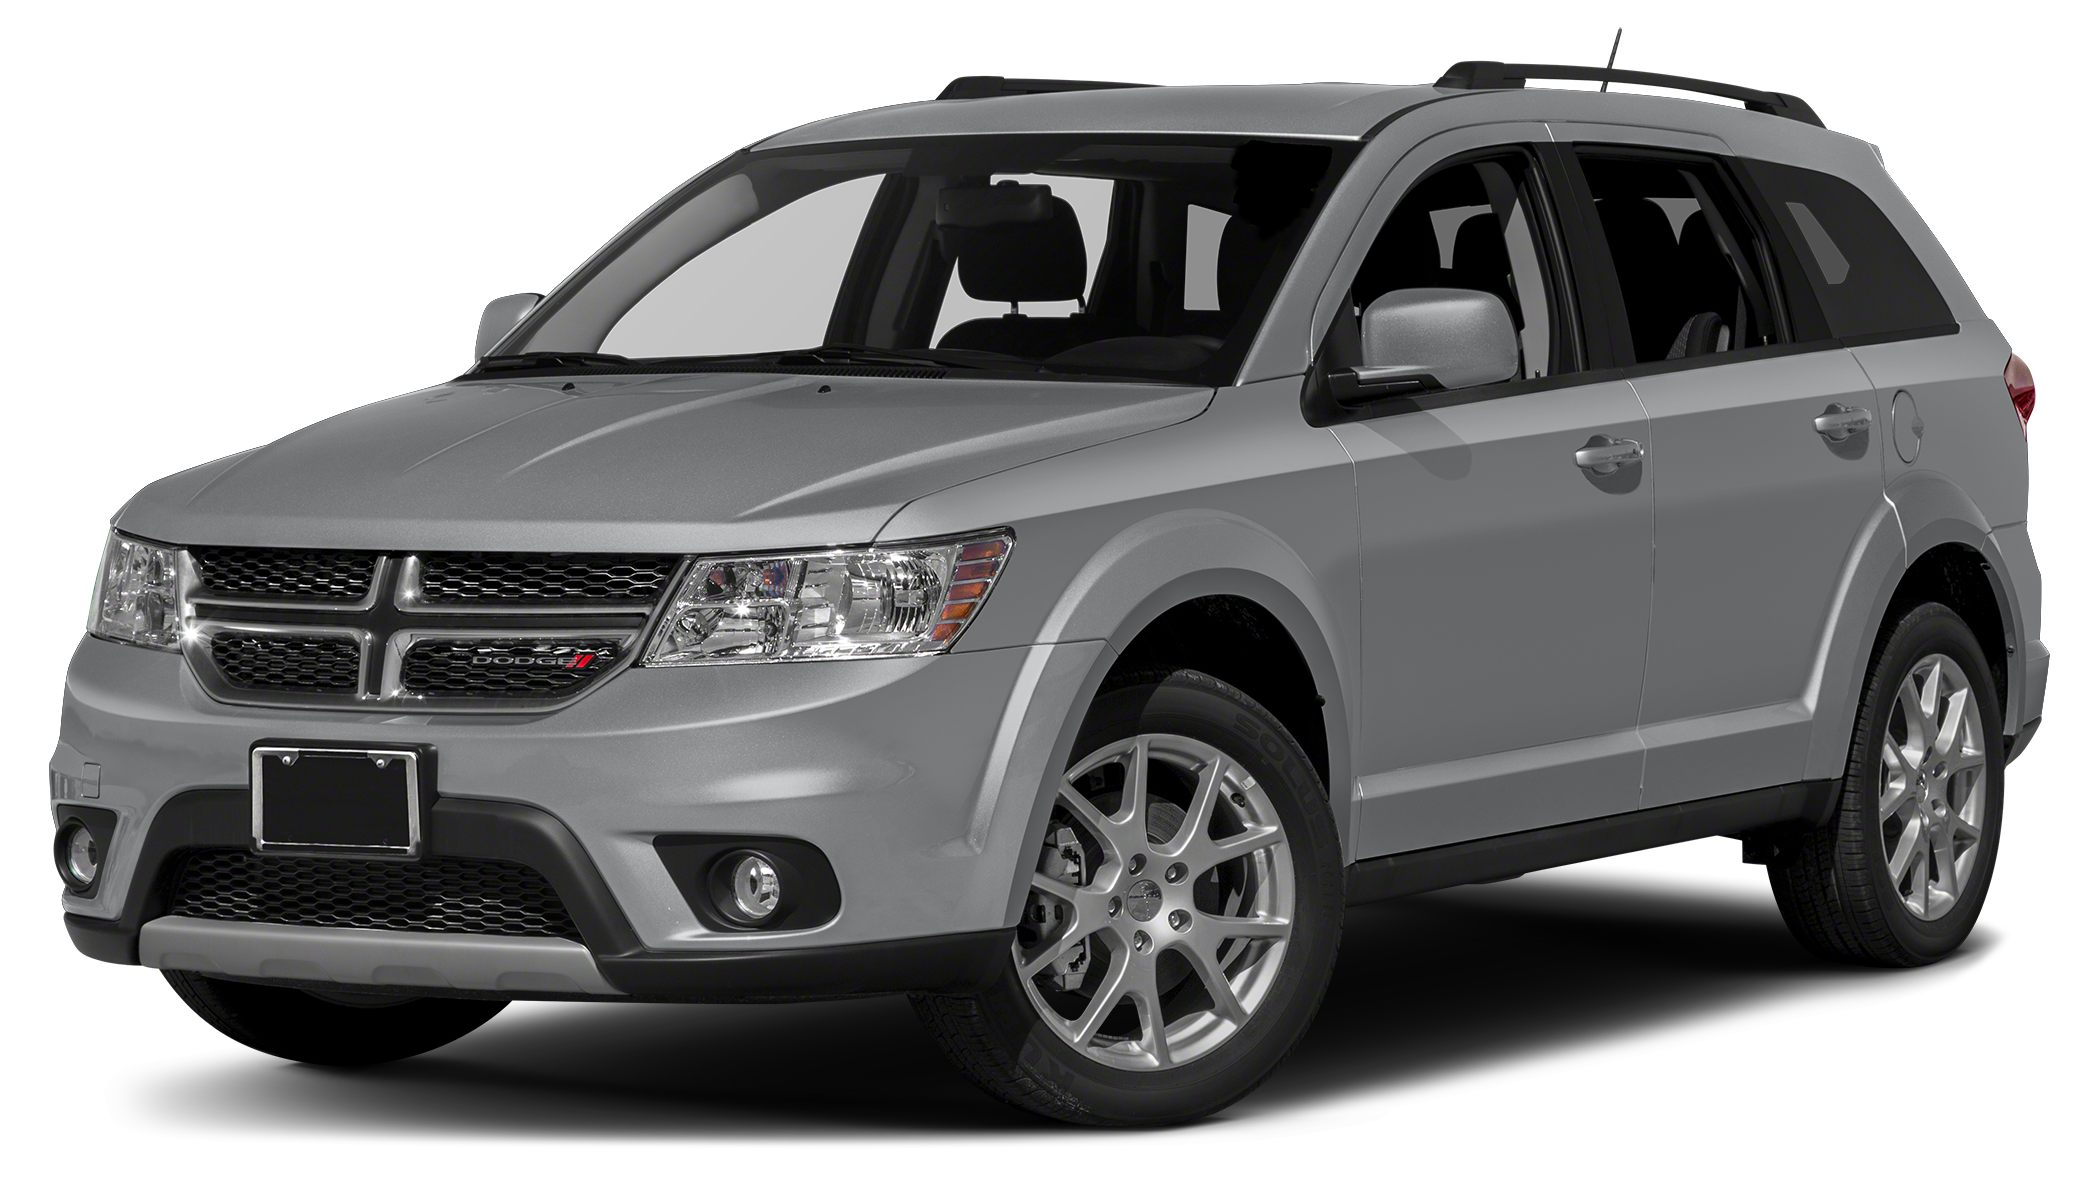 2015 Dodge Journey SXT 2015 Dodge Journey SXT in Silver and One Year Free Maintanence SiriusXM Tr